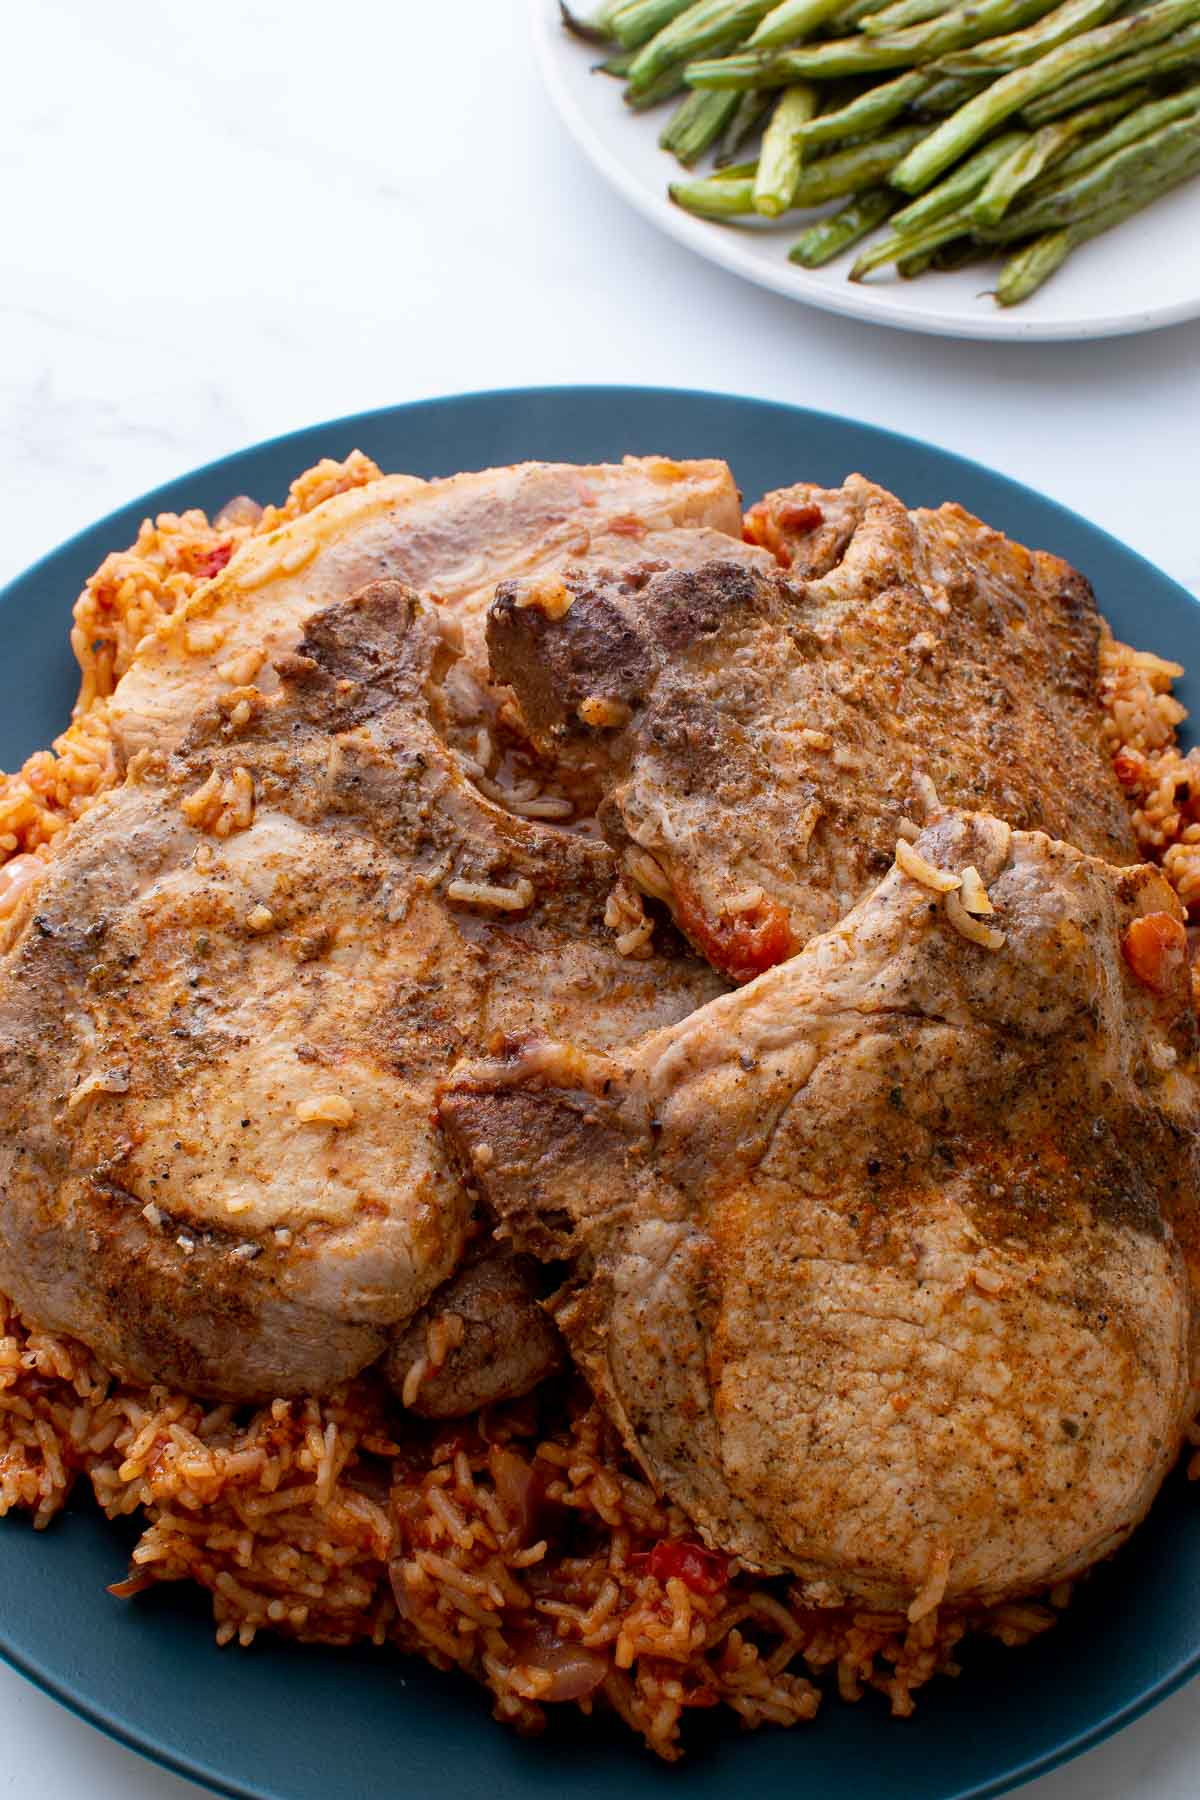 Close up of rice and pork chops.